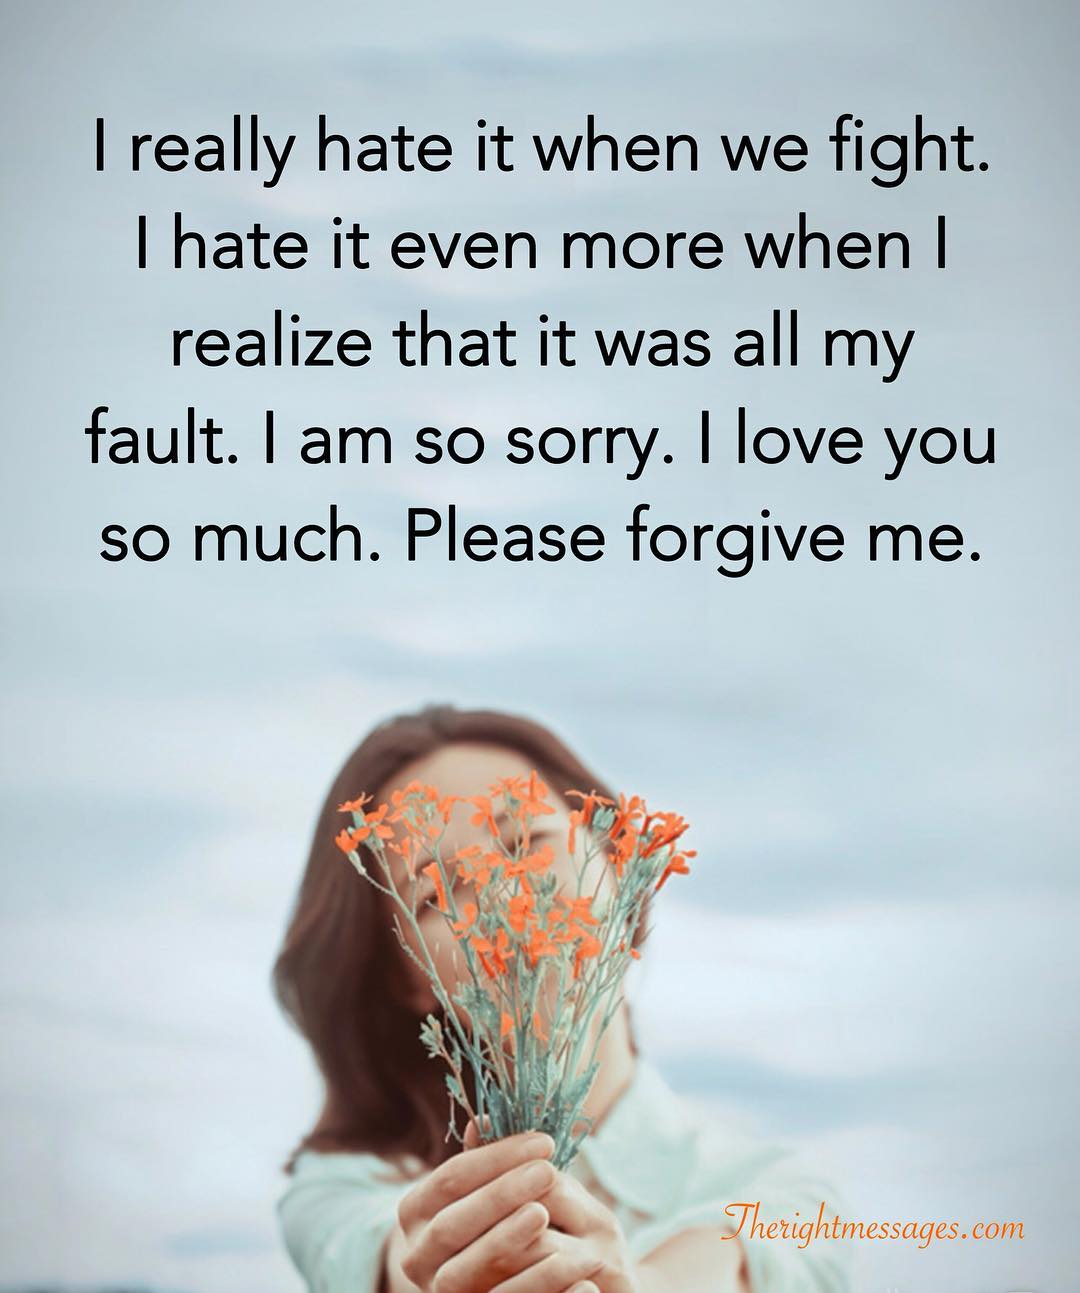 I'm Sorry Messages For Boyfriend - Romantic Ways To